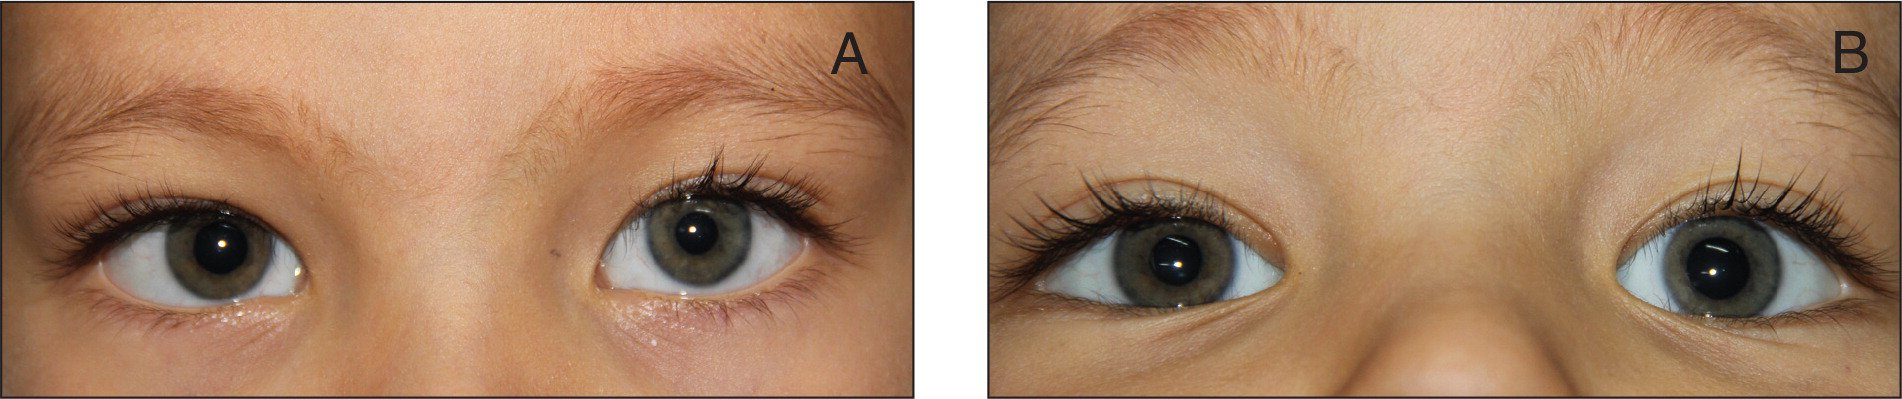 (A) Left-sided miosis. (B) Anisocoria is reversed after instillation of 0.5% apraclonidine.